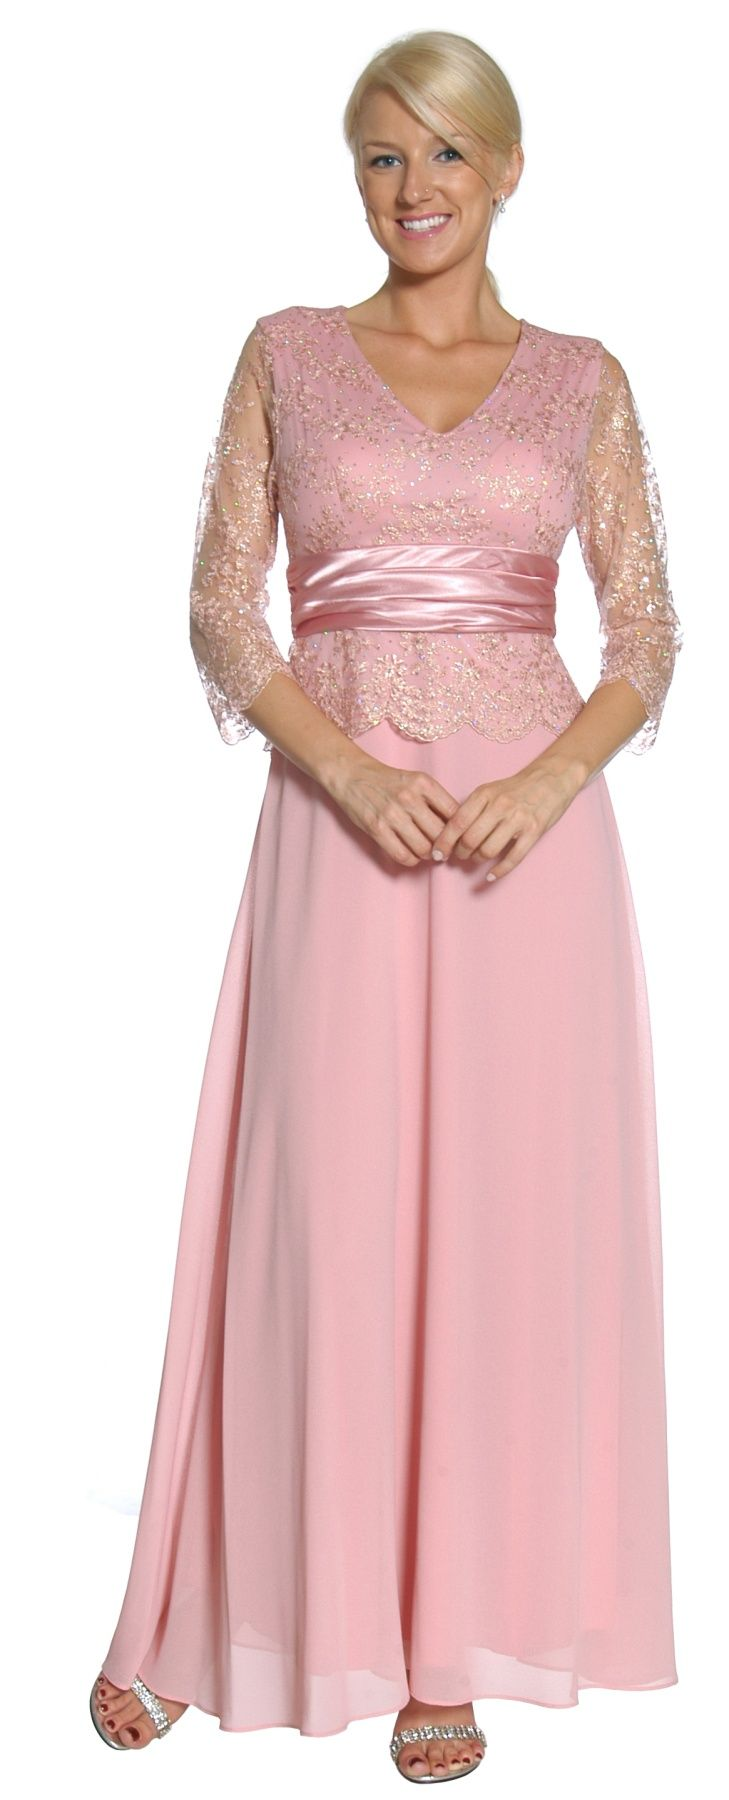 Dusty Rose Mother of Bride/Groom Dress 3/4 Lace Sleeve V Neck Empire ...